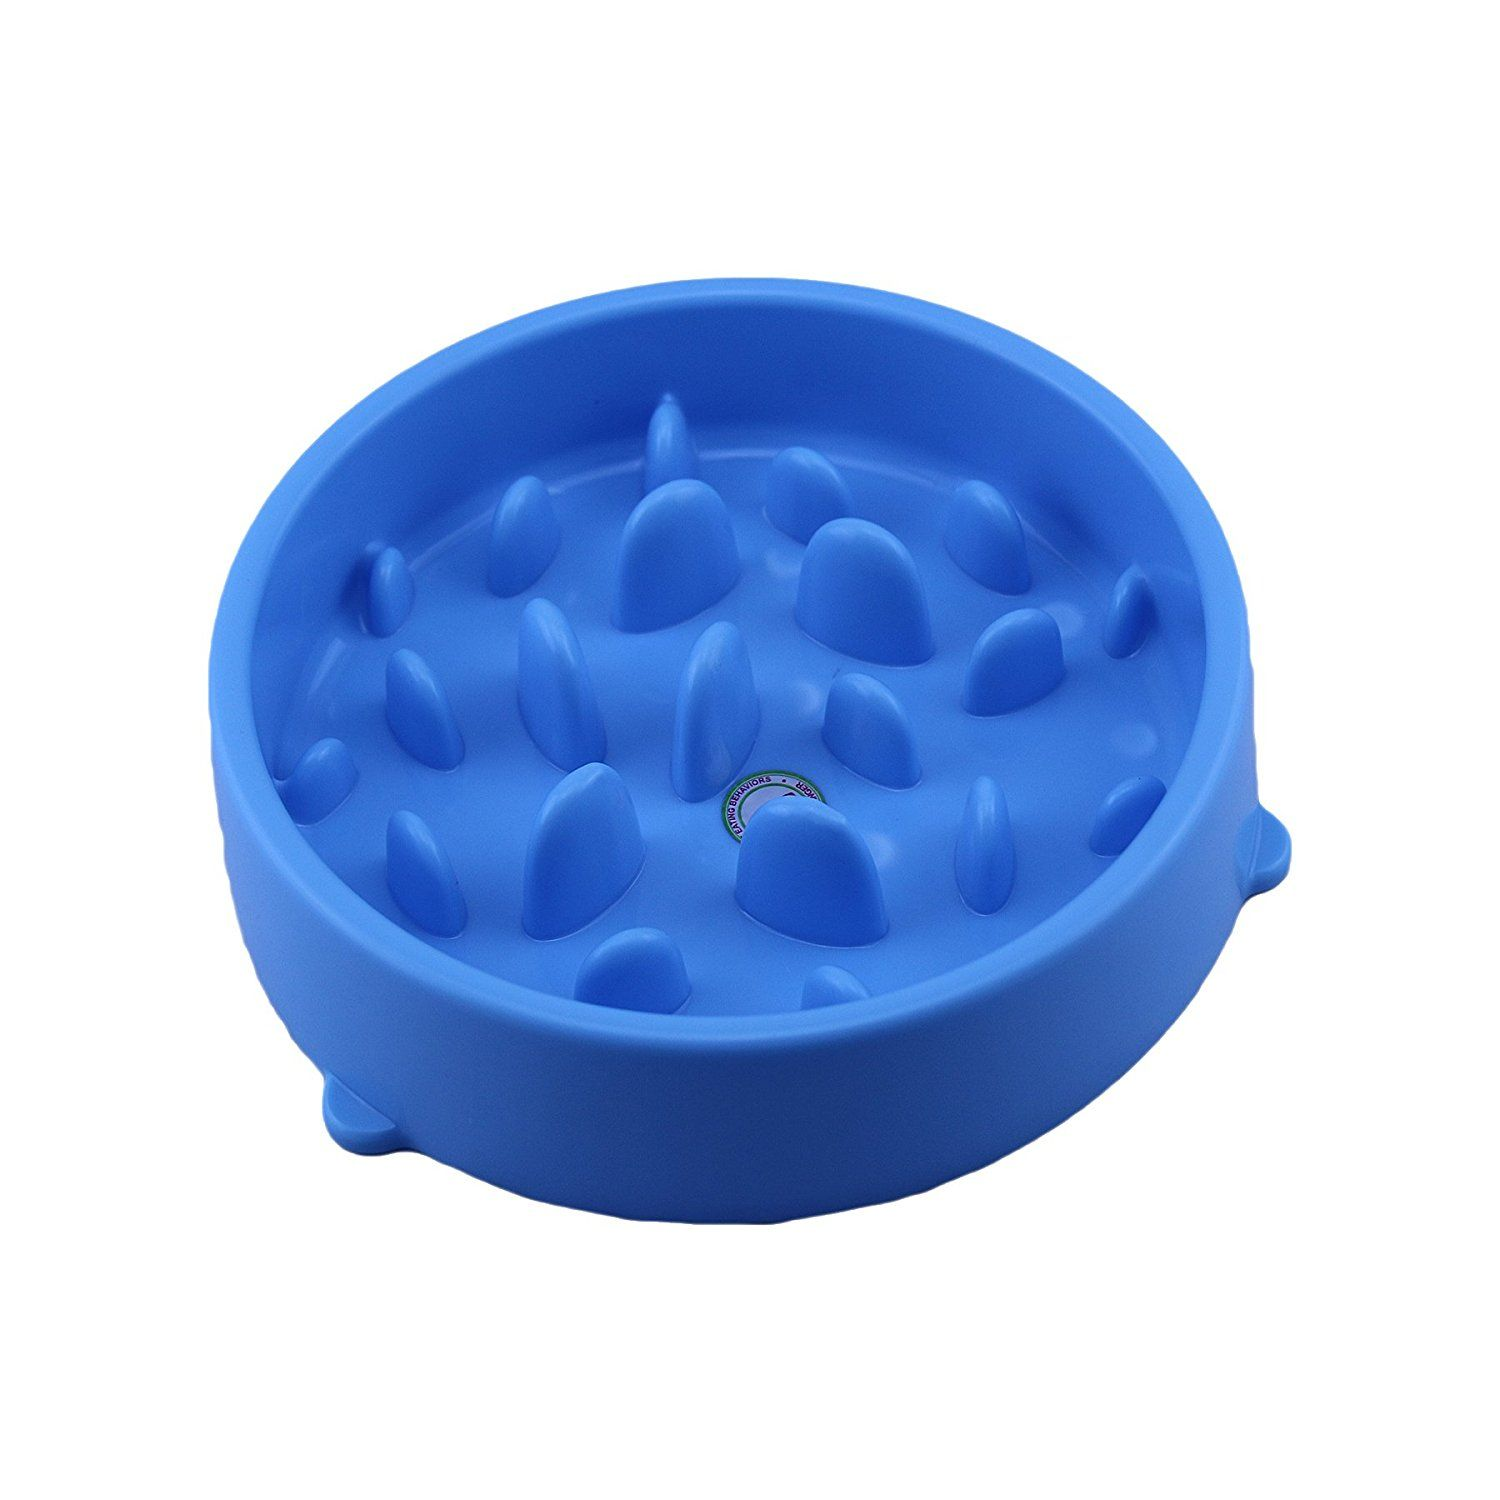 Joyoldelf Slow Feed Dog Bowl Interactive Bloat Stop Pet Feed Bowl - Slow Down Eating *** You can get more details by clicking on the image. (This is an affiliate link and I receive a commission for the sales)